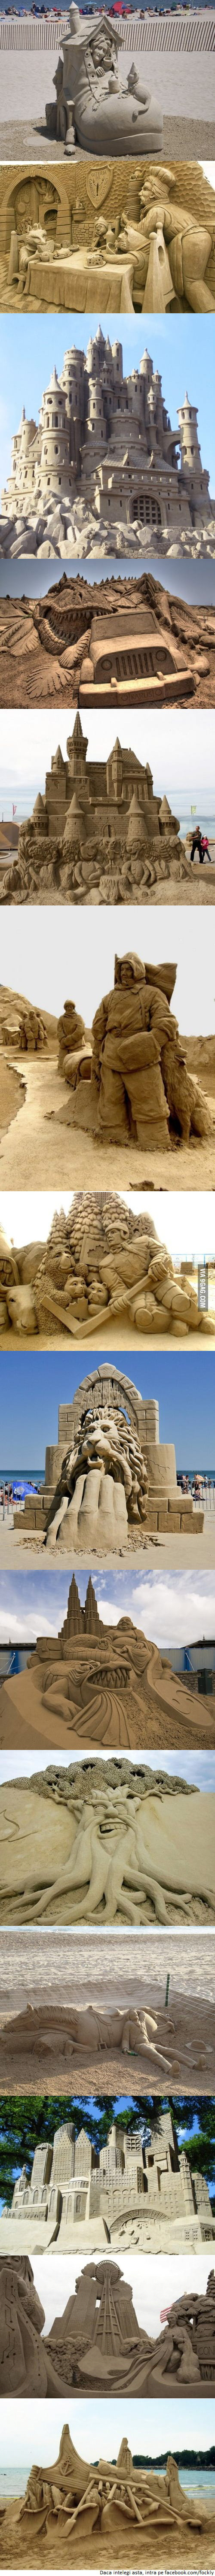 Insane sand sculptures